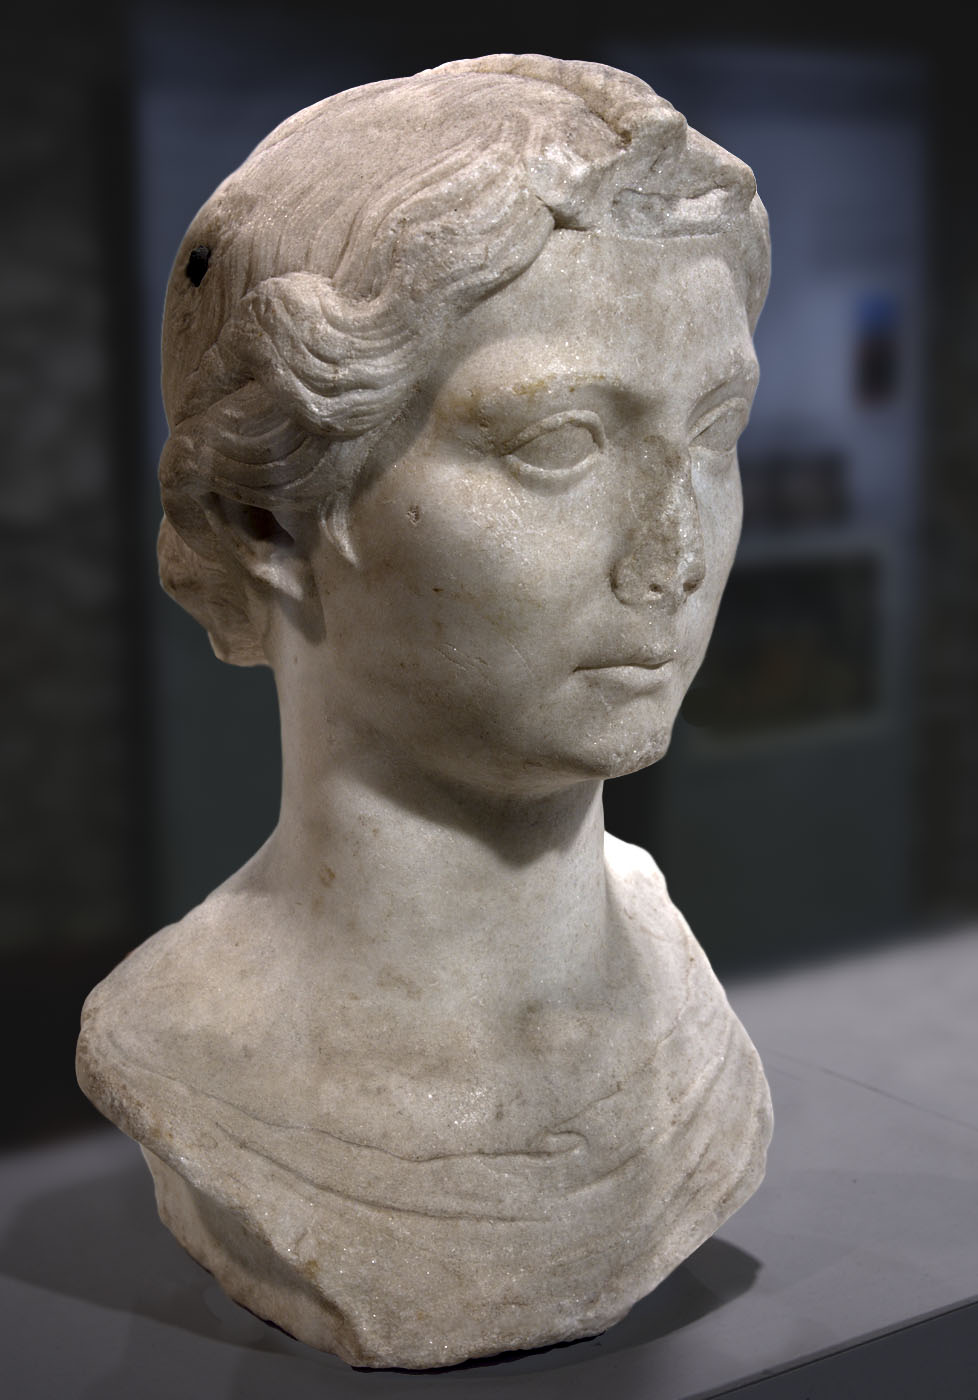 Livia, wife of August. Pentelic marble. End of the 1st cent. BCE — beginning of the 1st cent. CE. Rome, National Roman Museum, Crypta Balbi